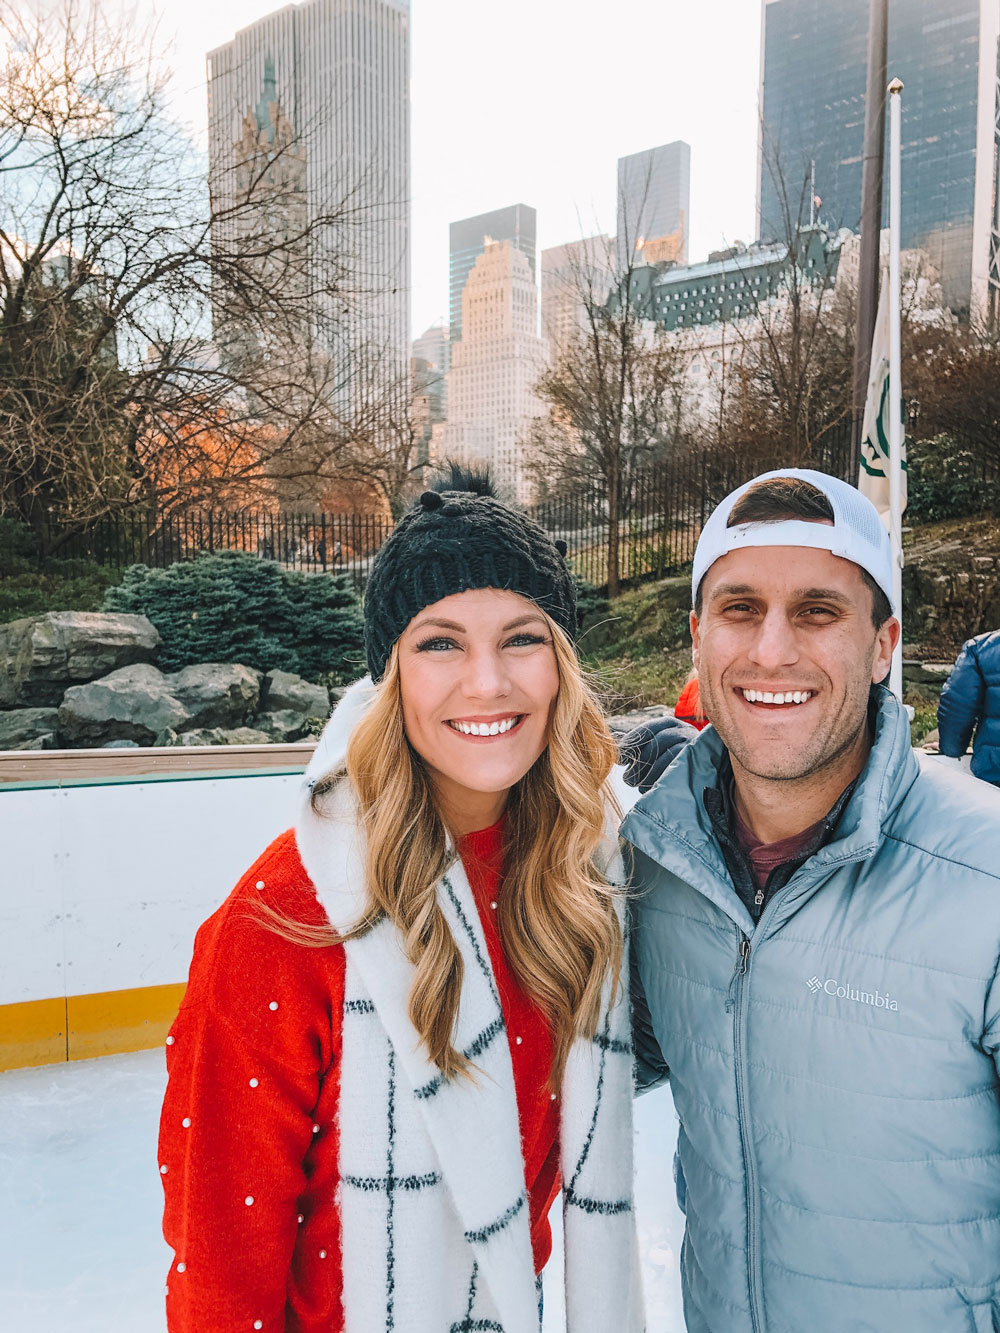 Oklahoma Blogger Amanda Martin and her husband visit NYC and ice skate in Central Park